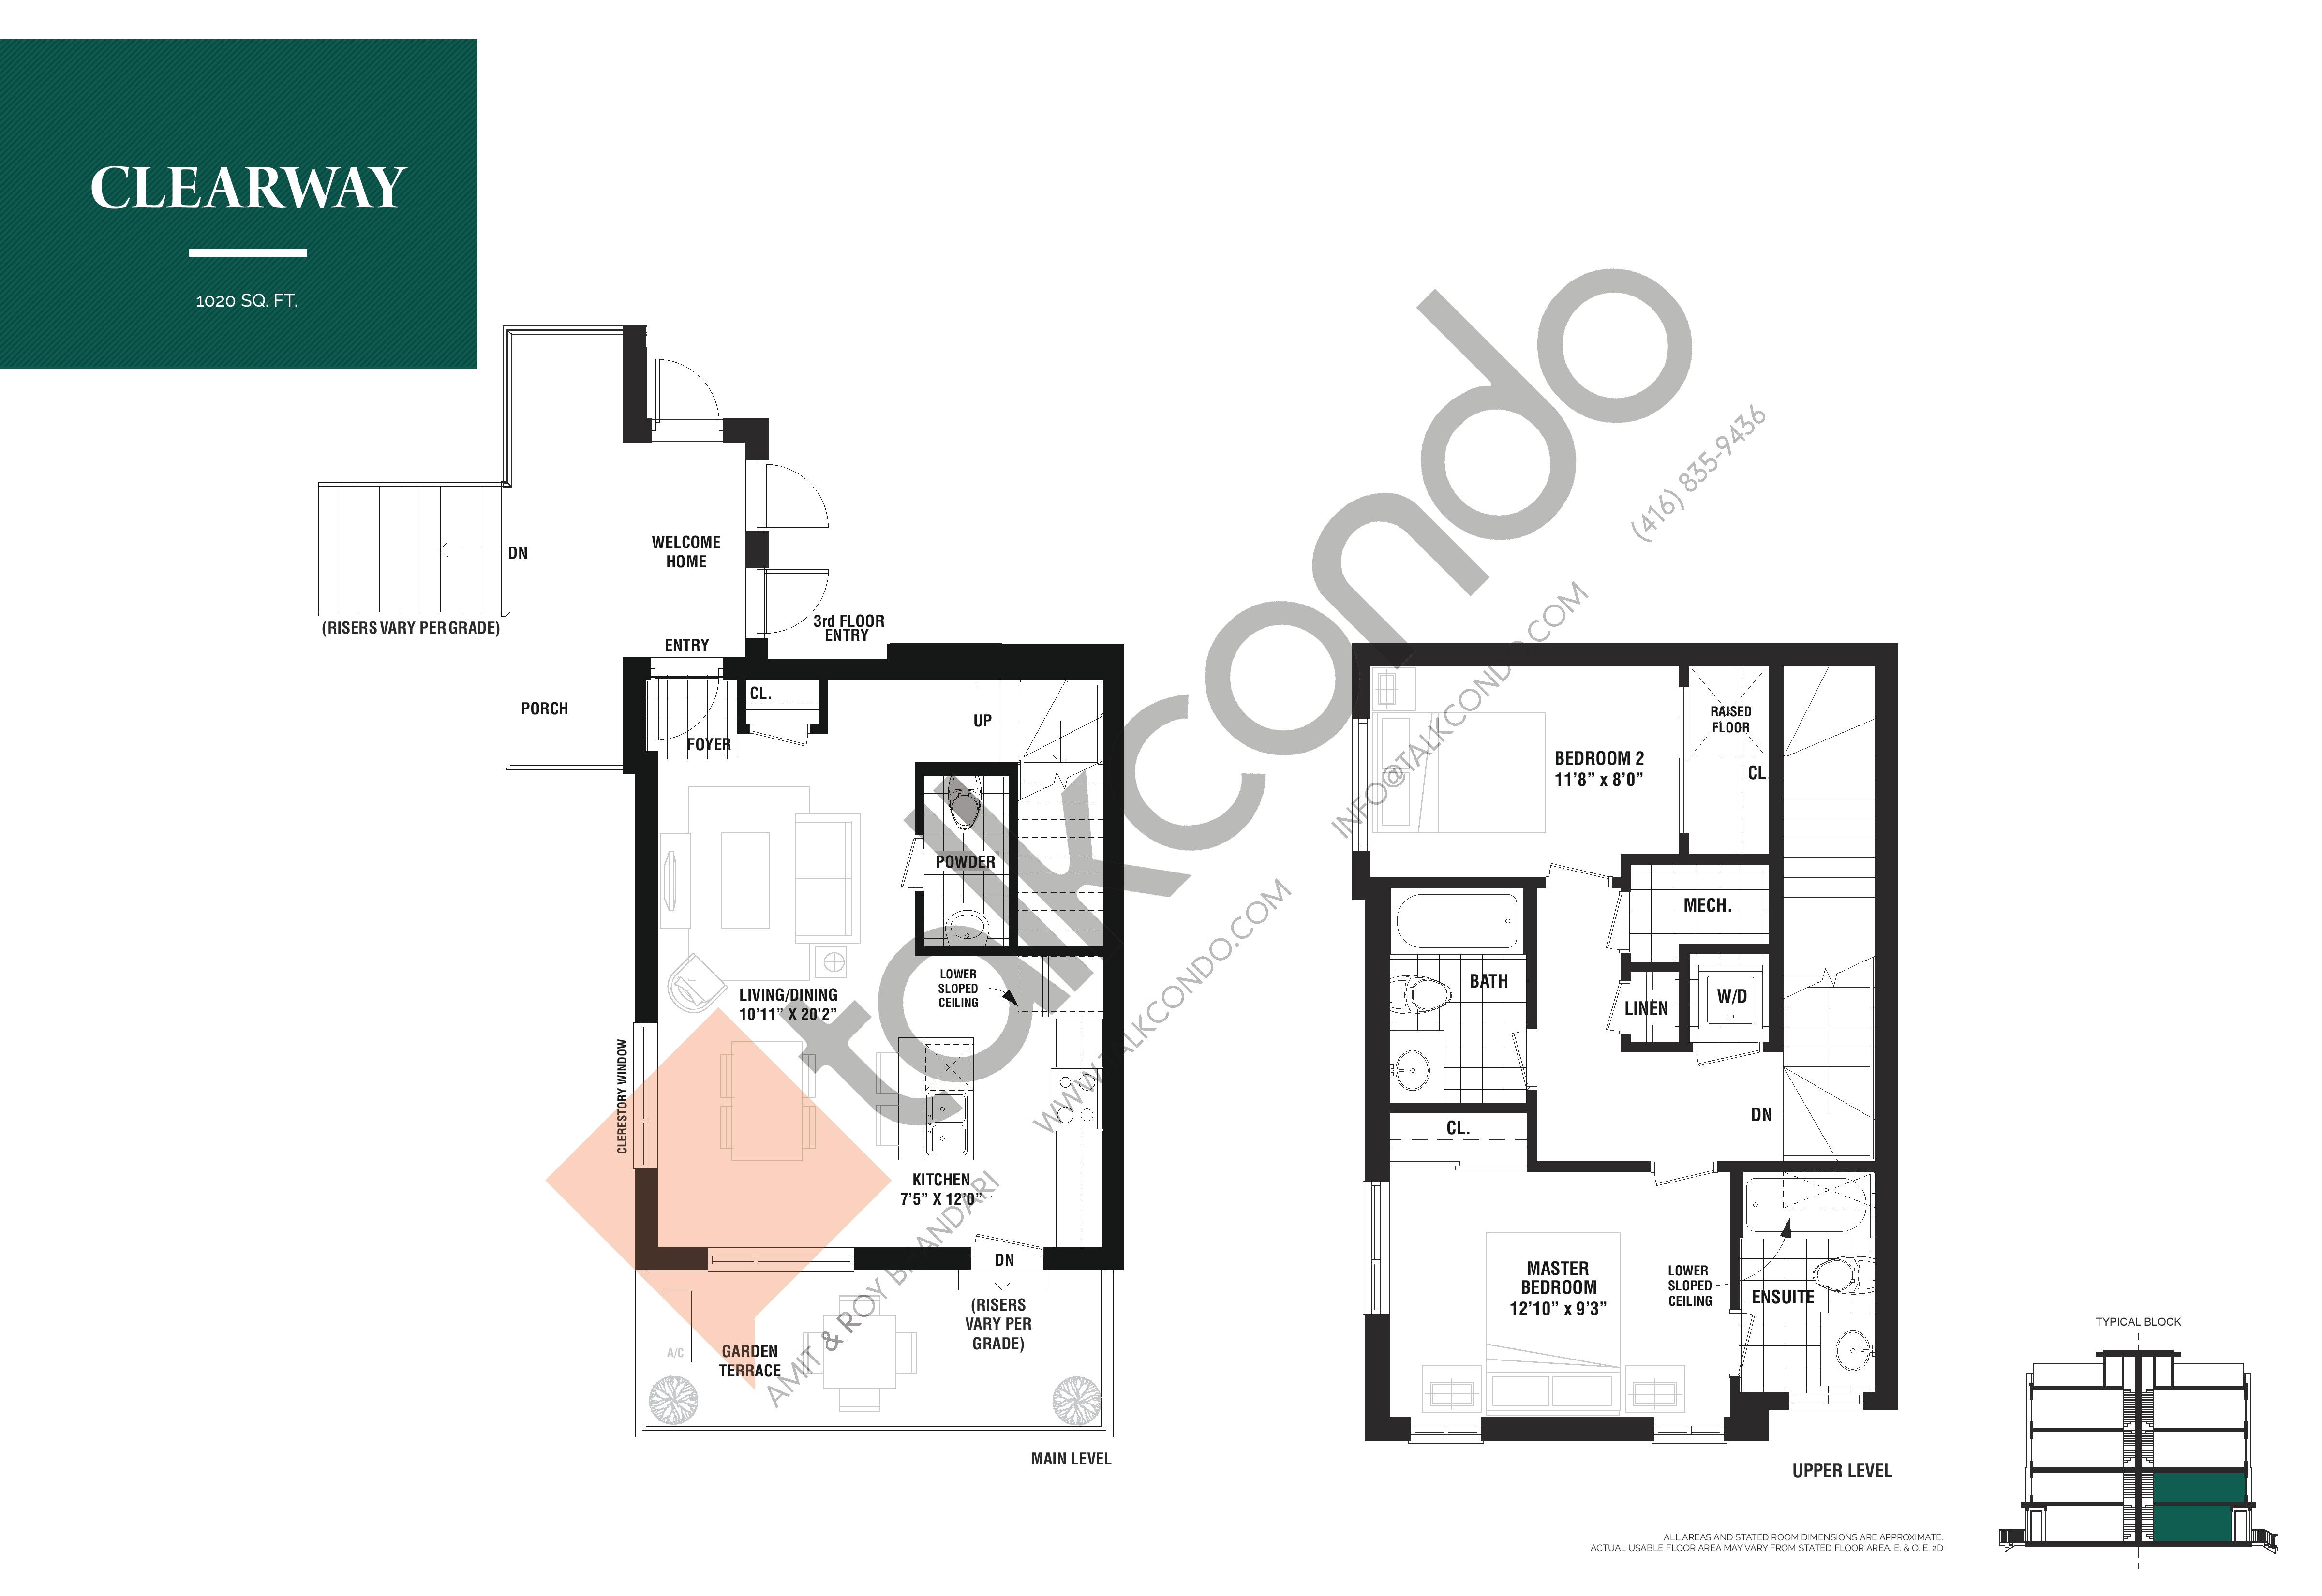 Clearway Floor Plan at The Way Urban Towns - 1020 sq.ft